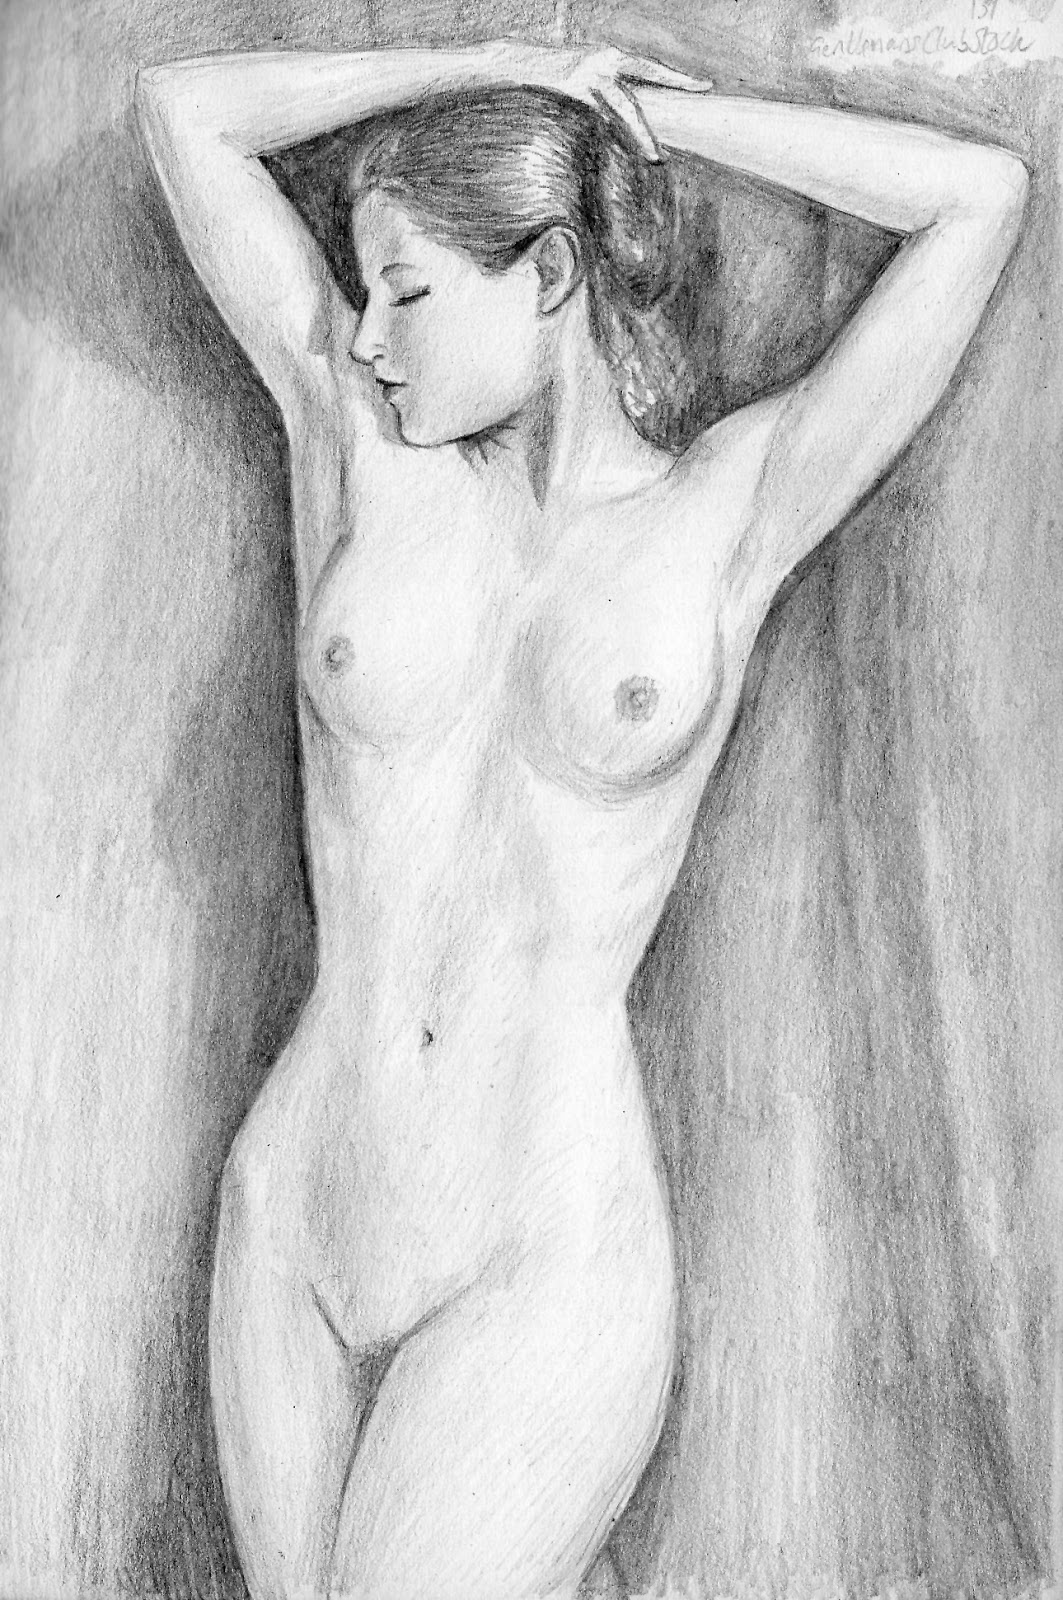 Fucking photo of pencil sketch nude image